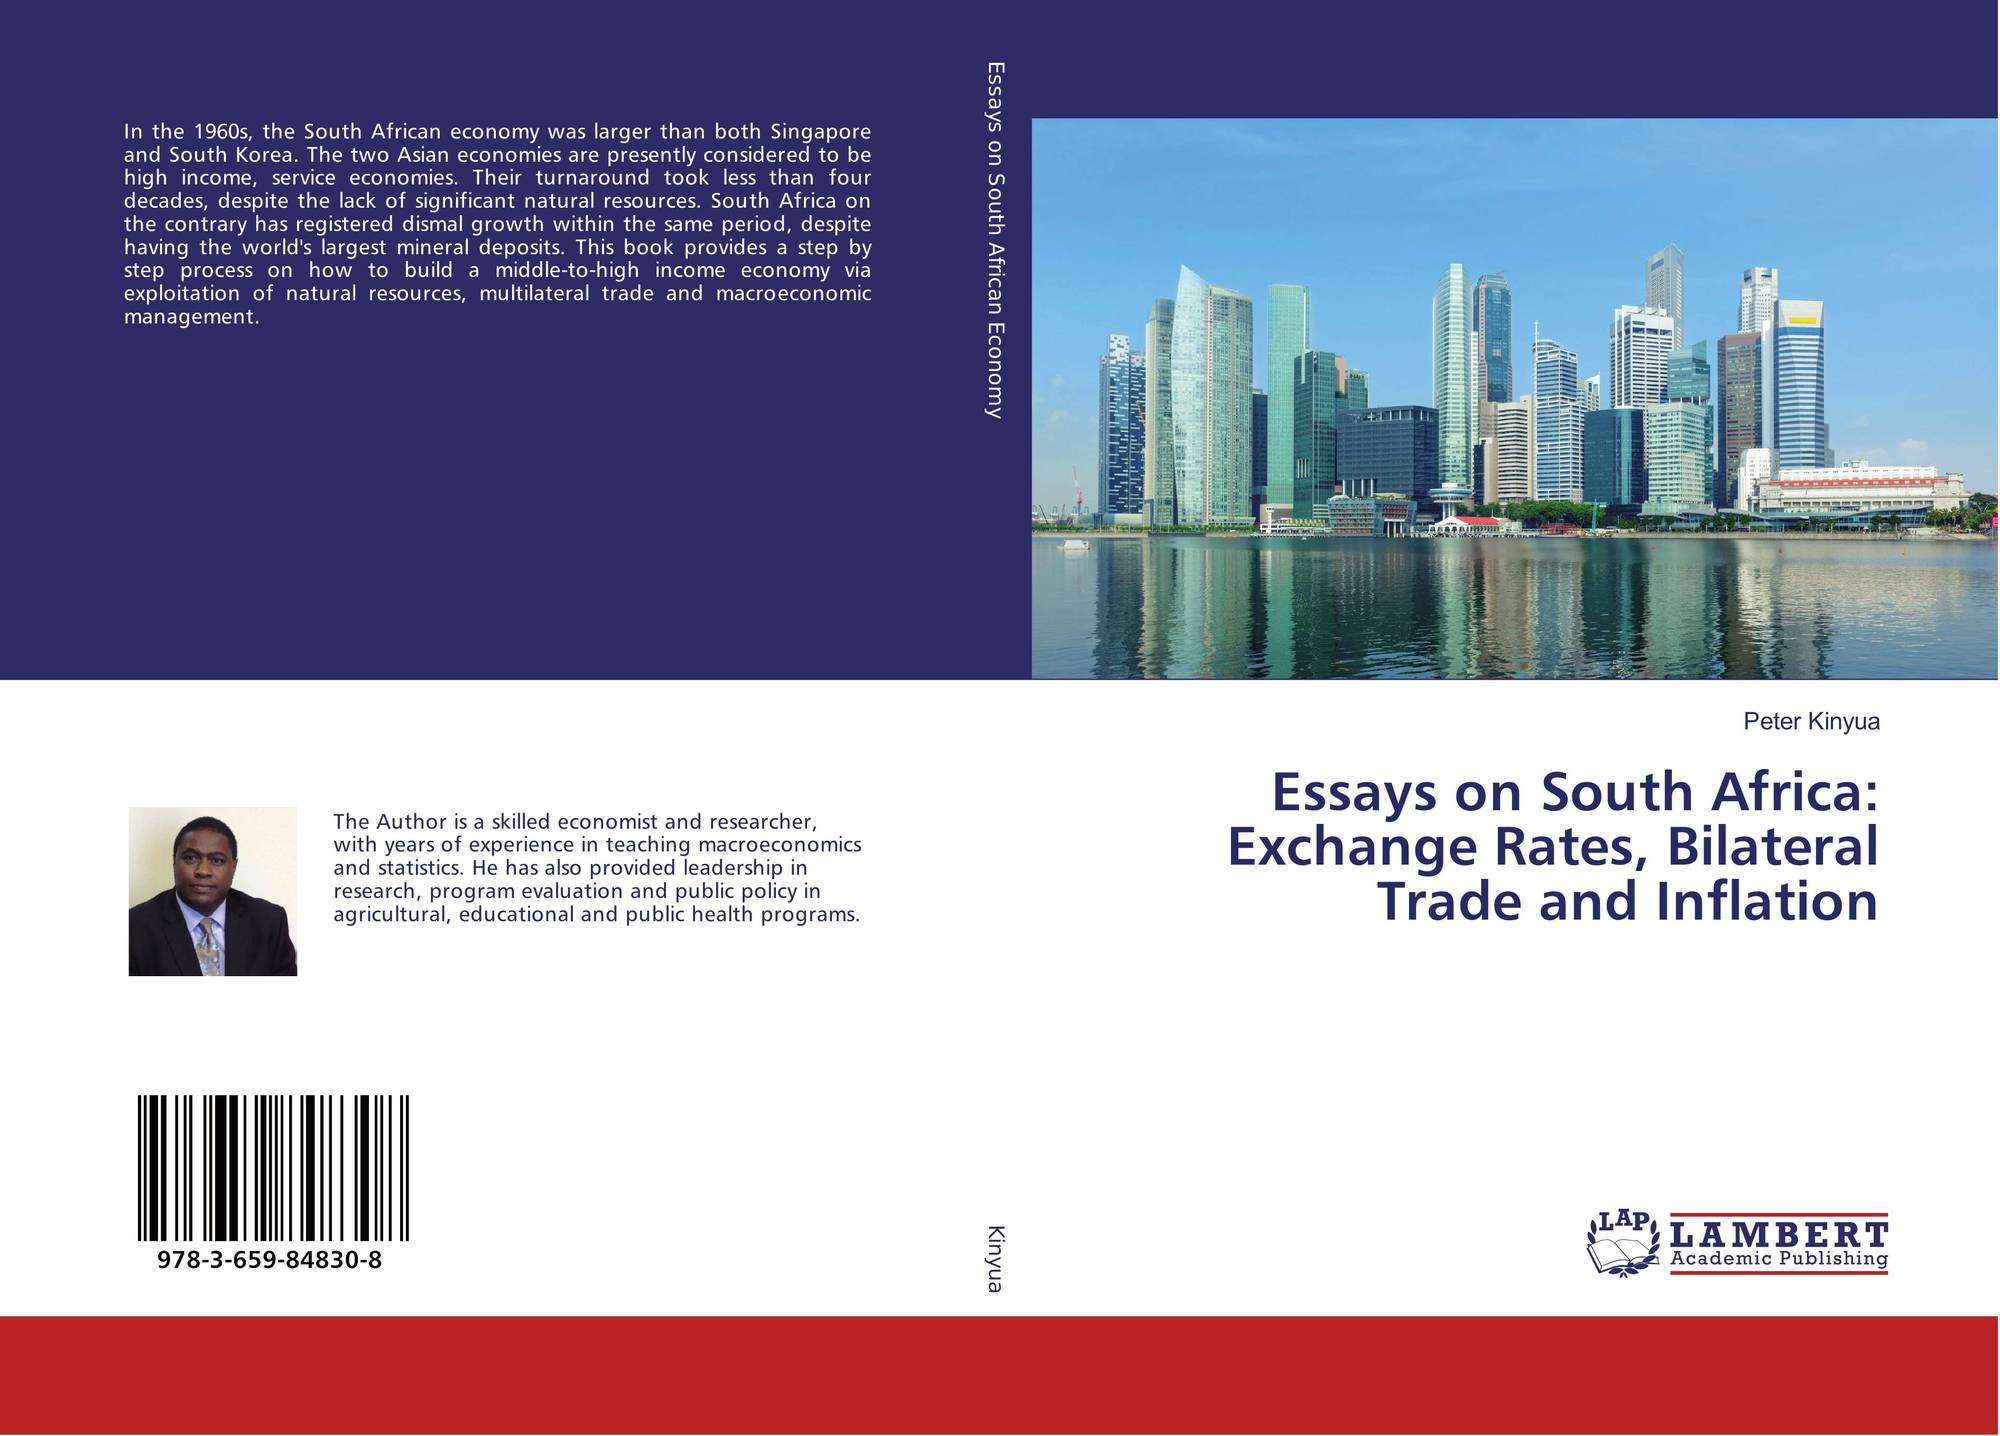 economy of south africa economics essay South africa's economic policy has focused on controlling inflation while empowering a broader economic base however, the country faces structural constraints that also limit economic growth, such as skills shortages, declining global competitiveness, and frequent work stoppages due to strike action.